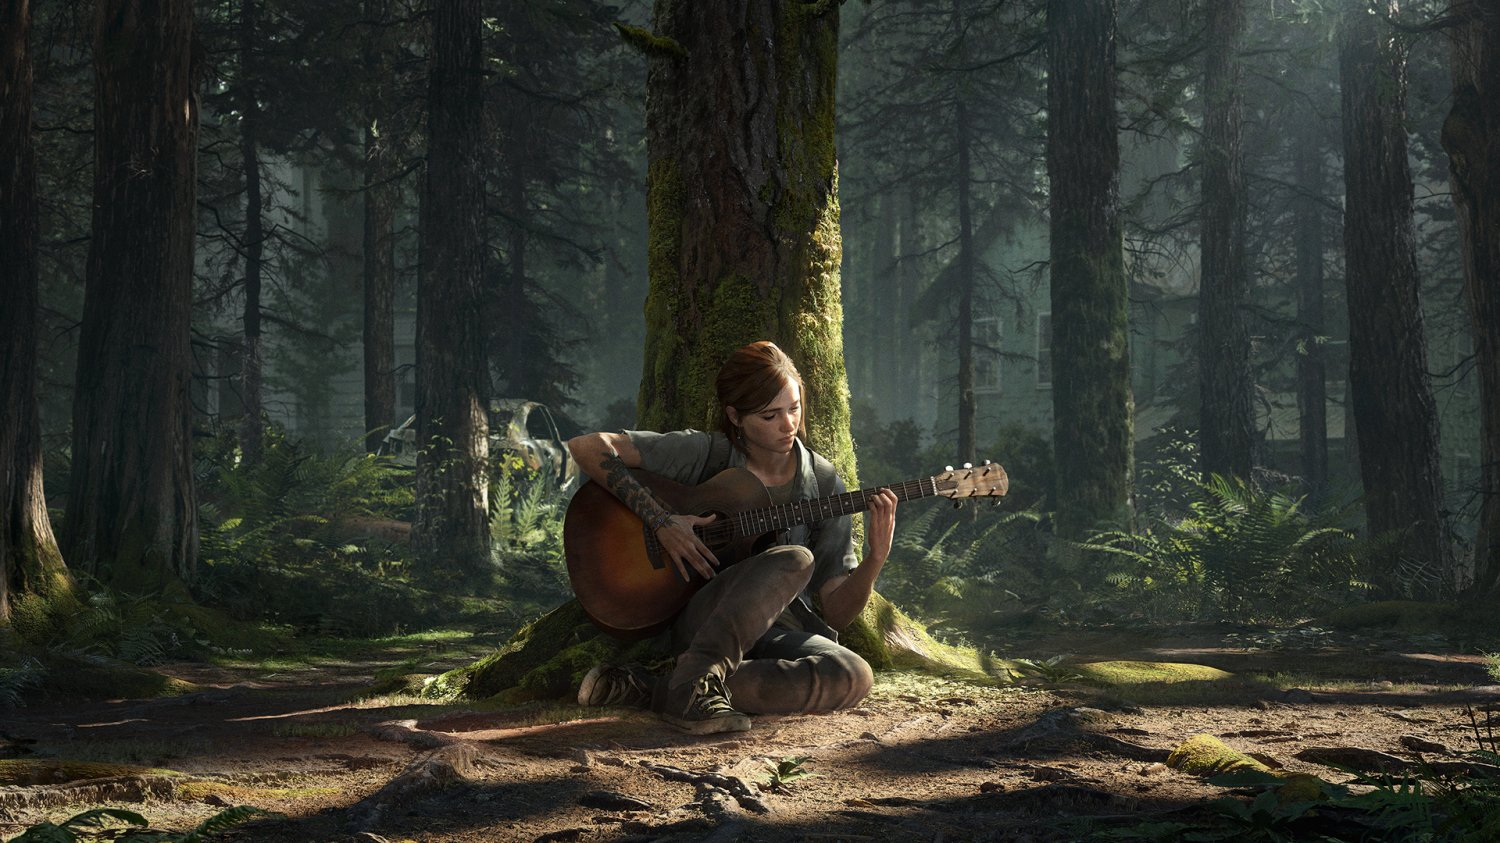 The Last of Us Part II Ellie  13x19 inches Poster Print